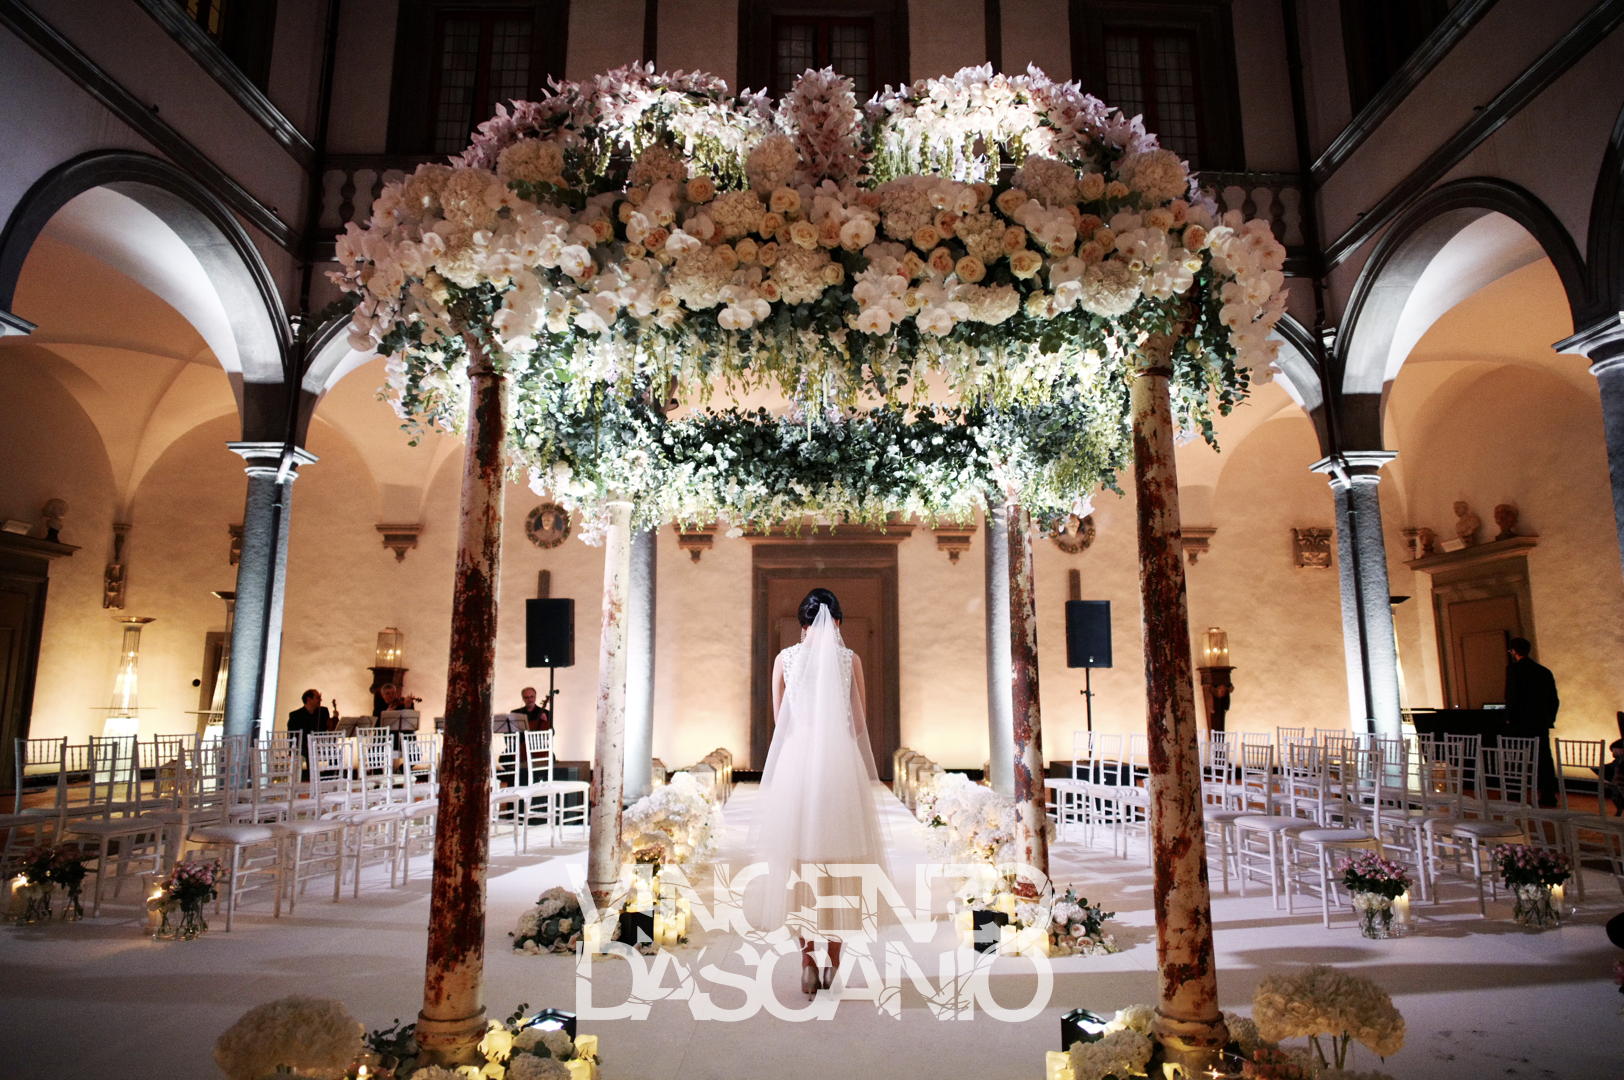 Wedding gate and stage decoration  Organic pink chuppah for ceremony decoration weddingceremony